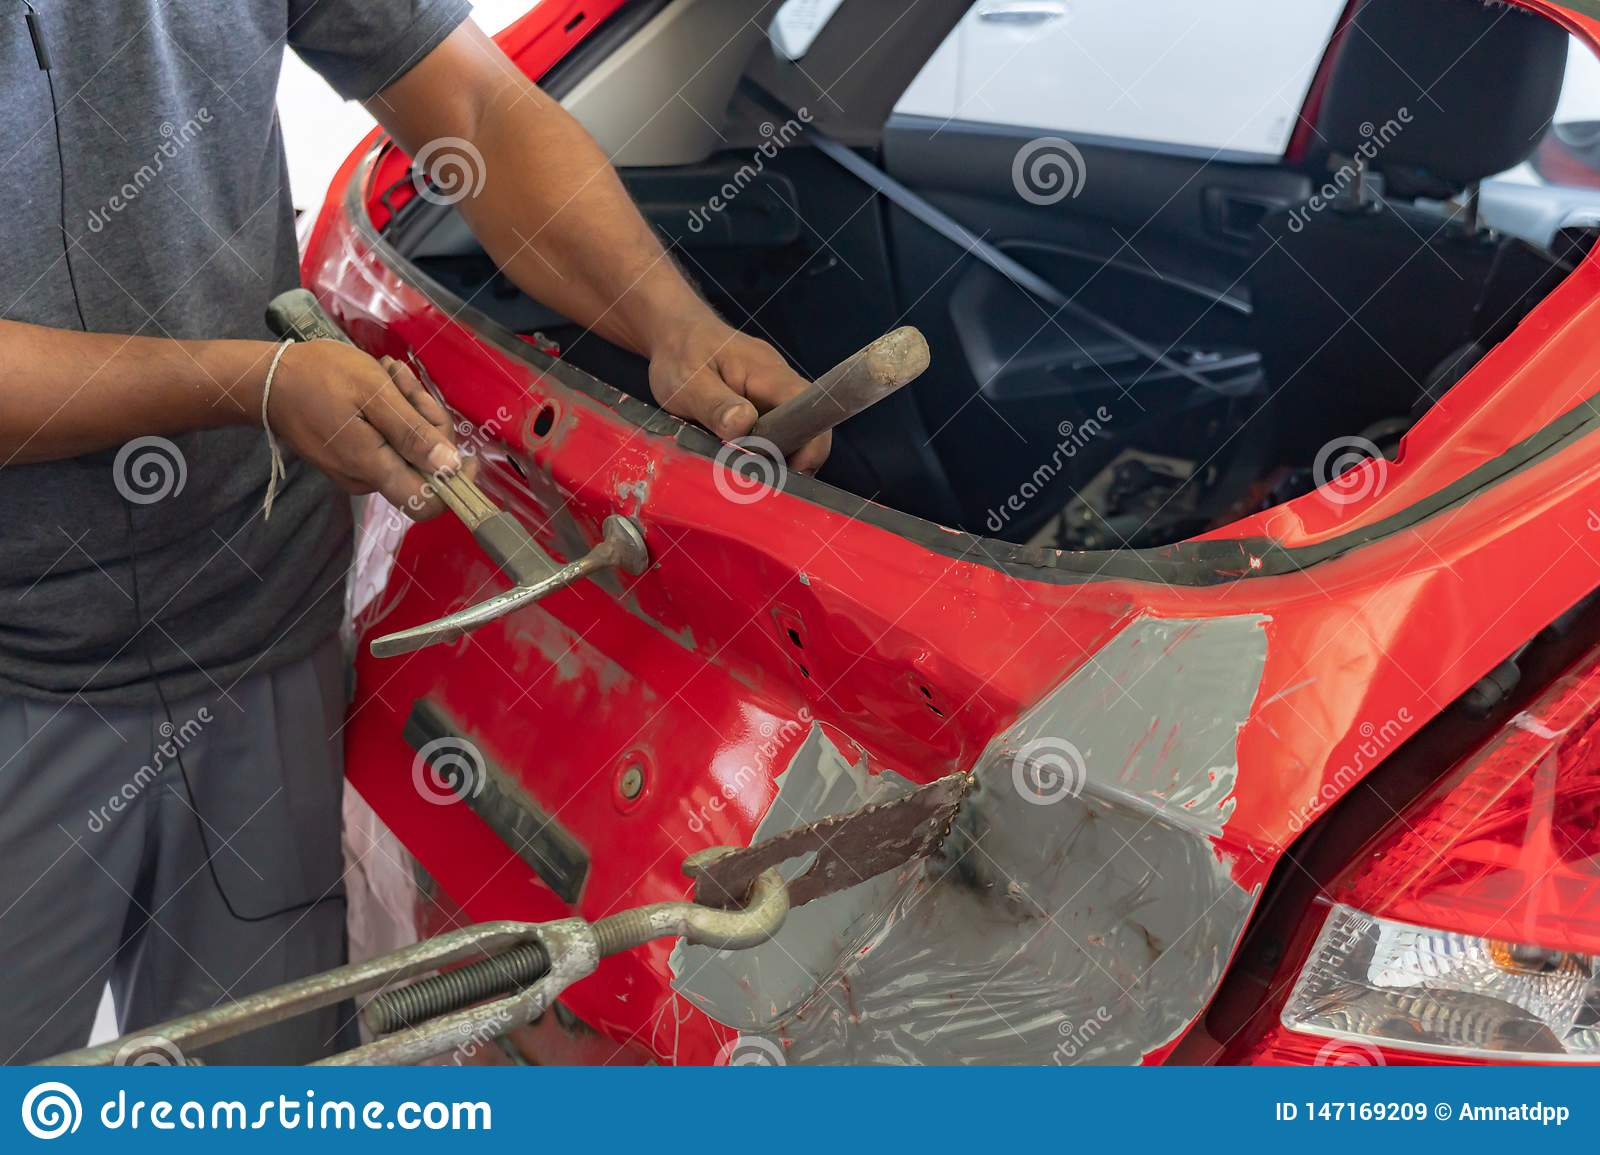 Car Paint Repair Series Photos Free Royalty Free Stock Photos From Dreamstime